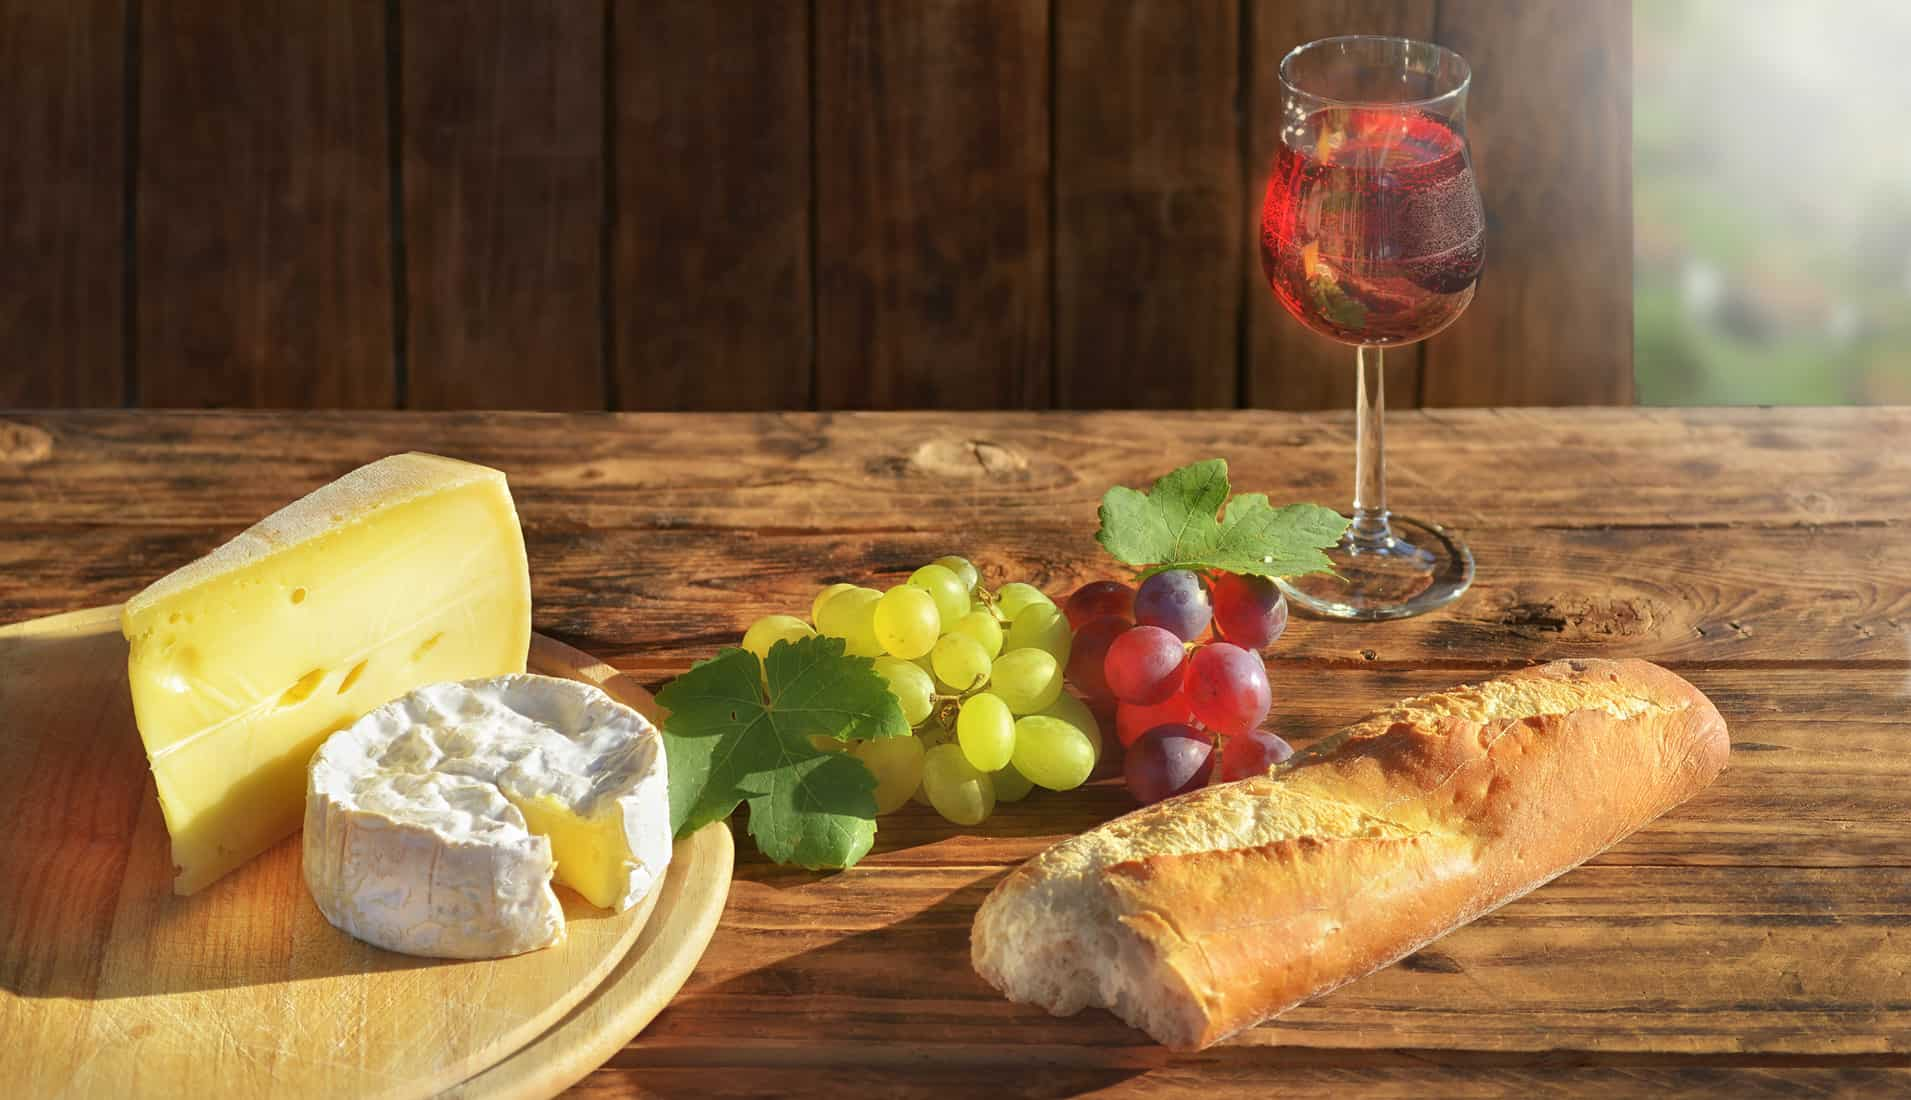 Camembert and grapes, French food